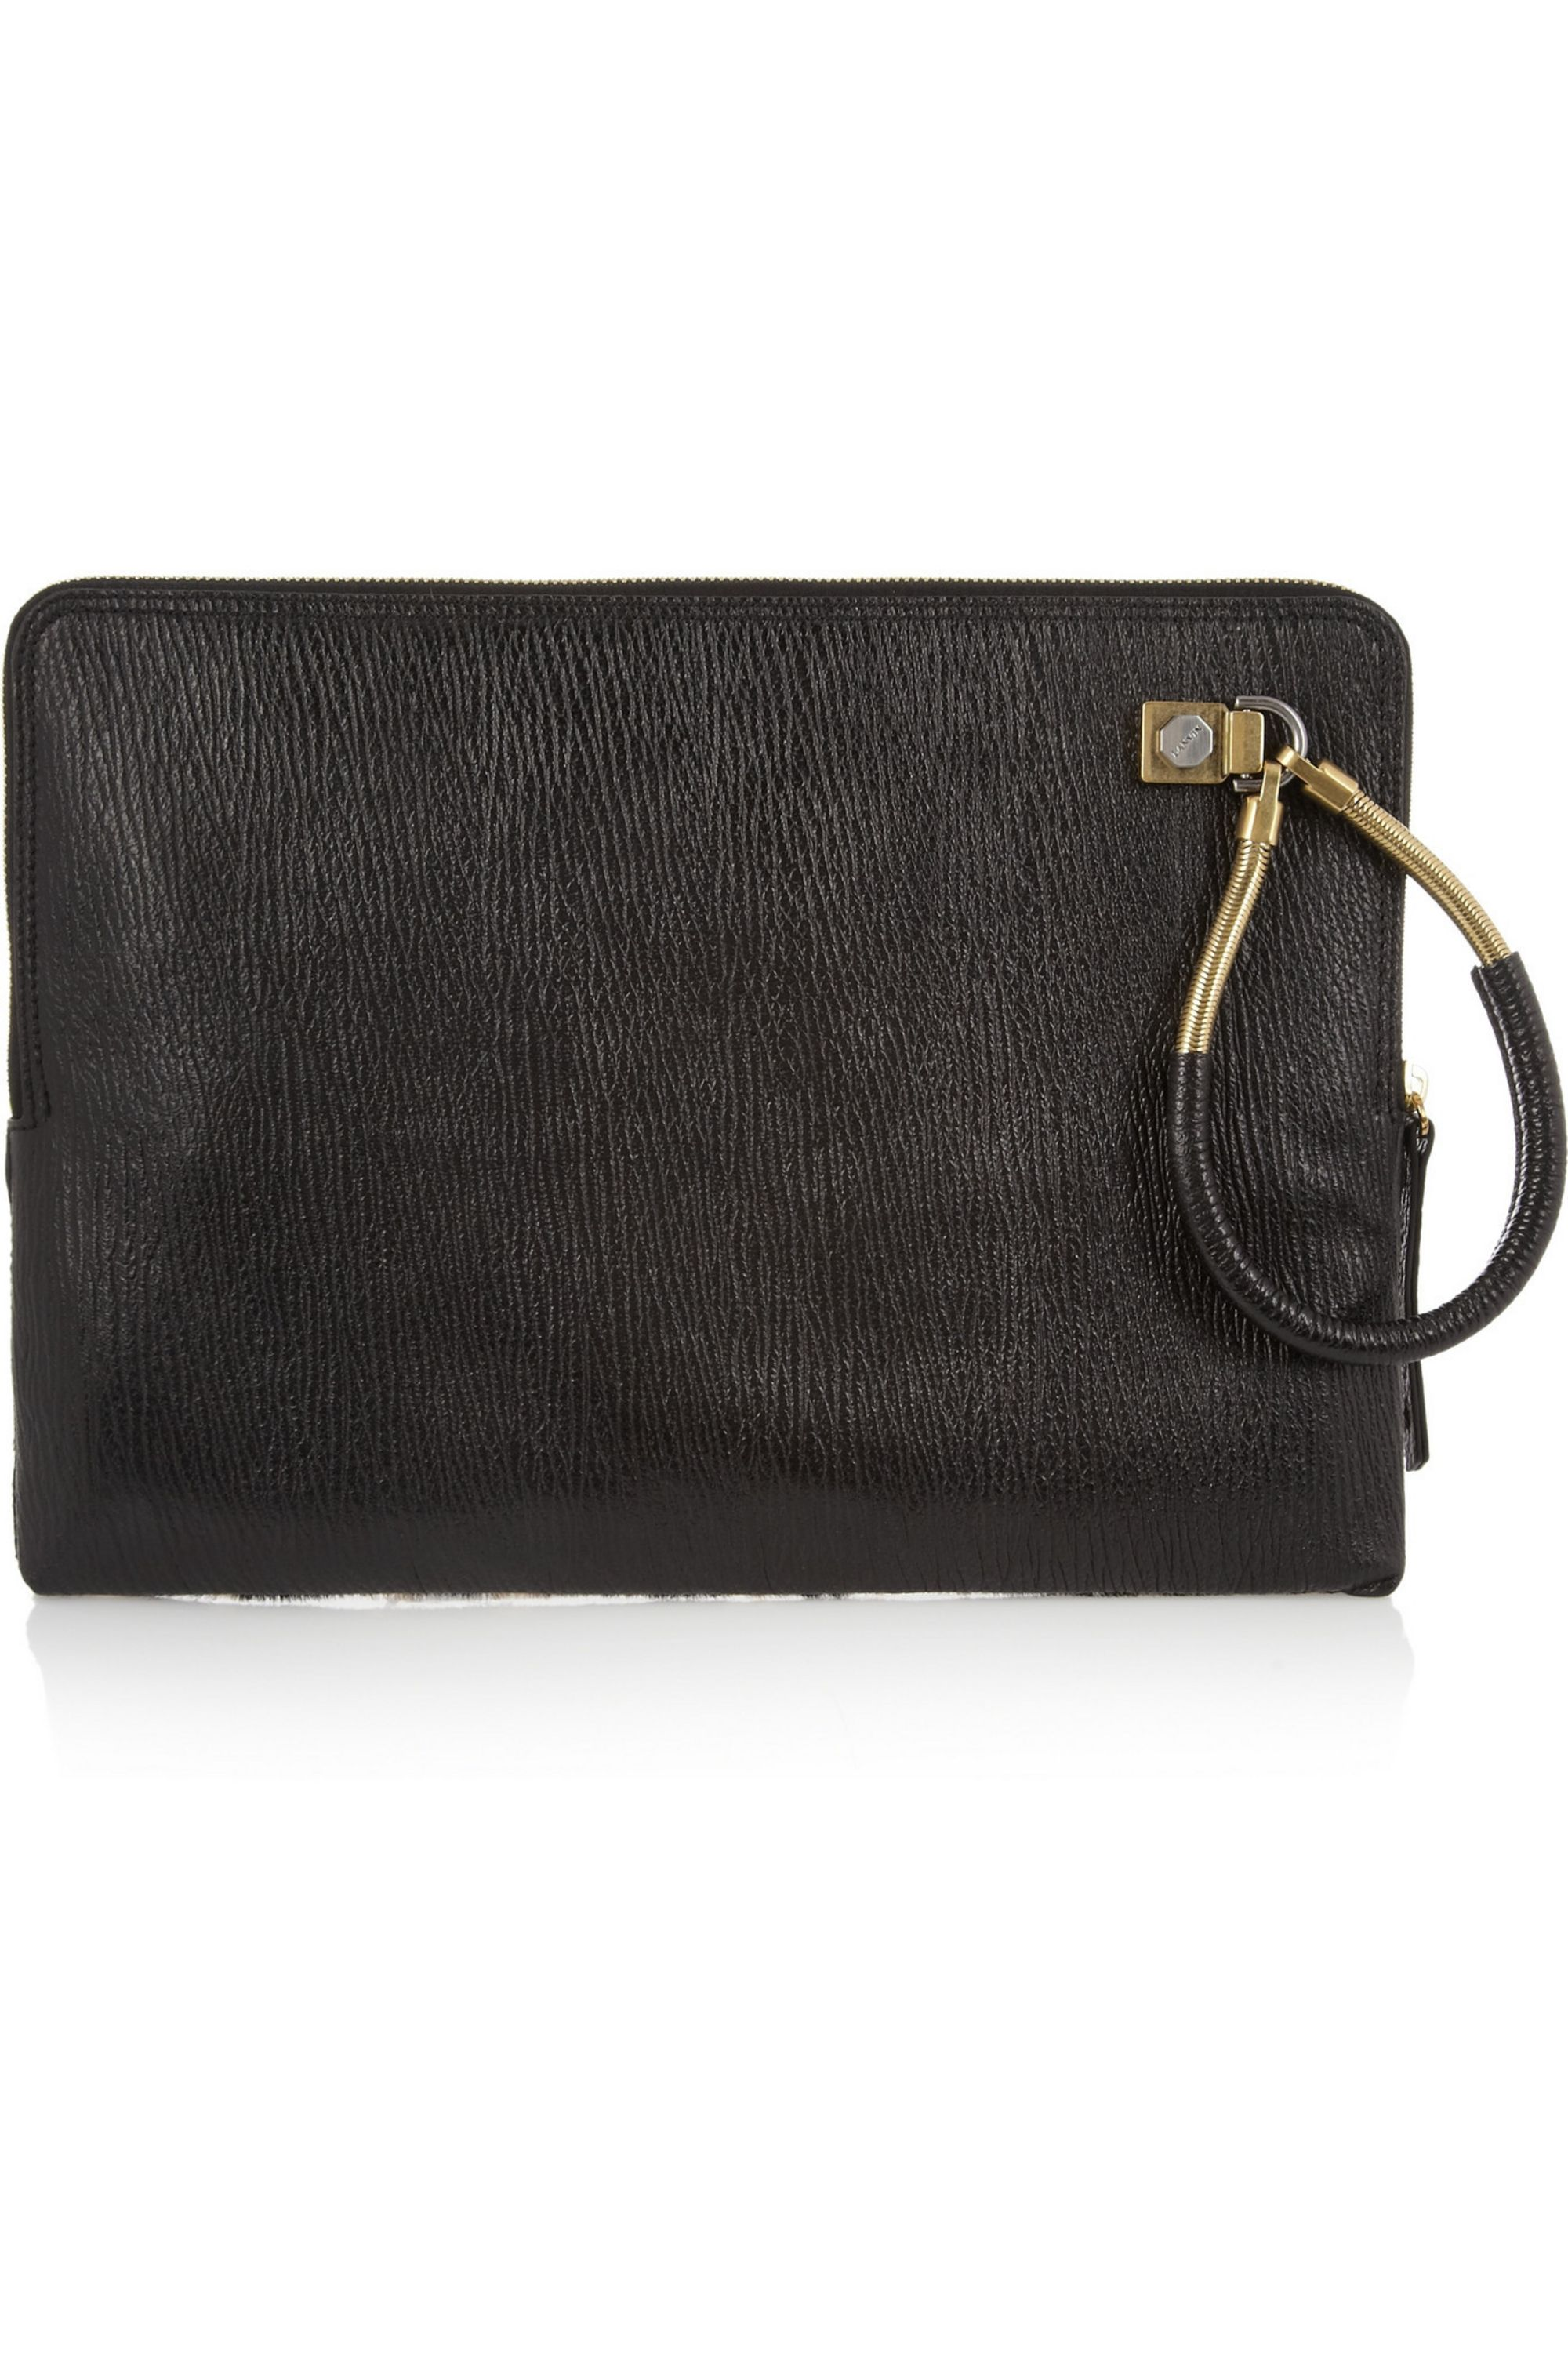 Lanvin Leopard-print calf hair and textured-leather clutch